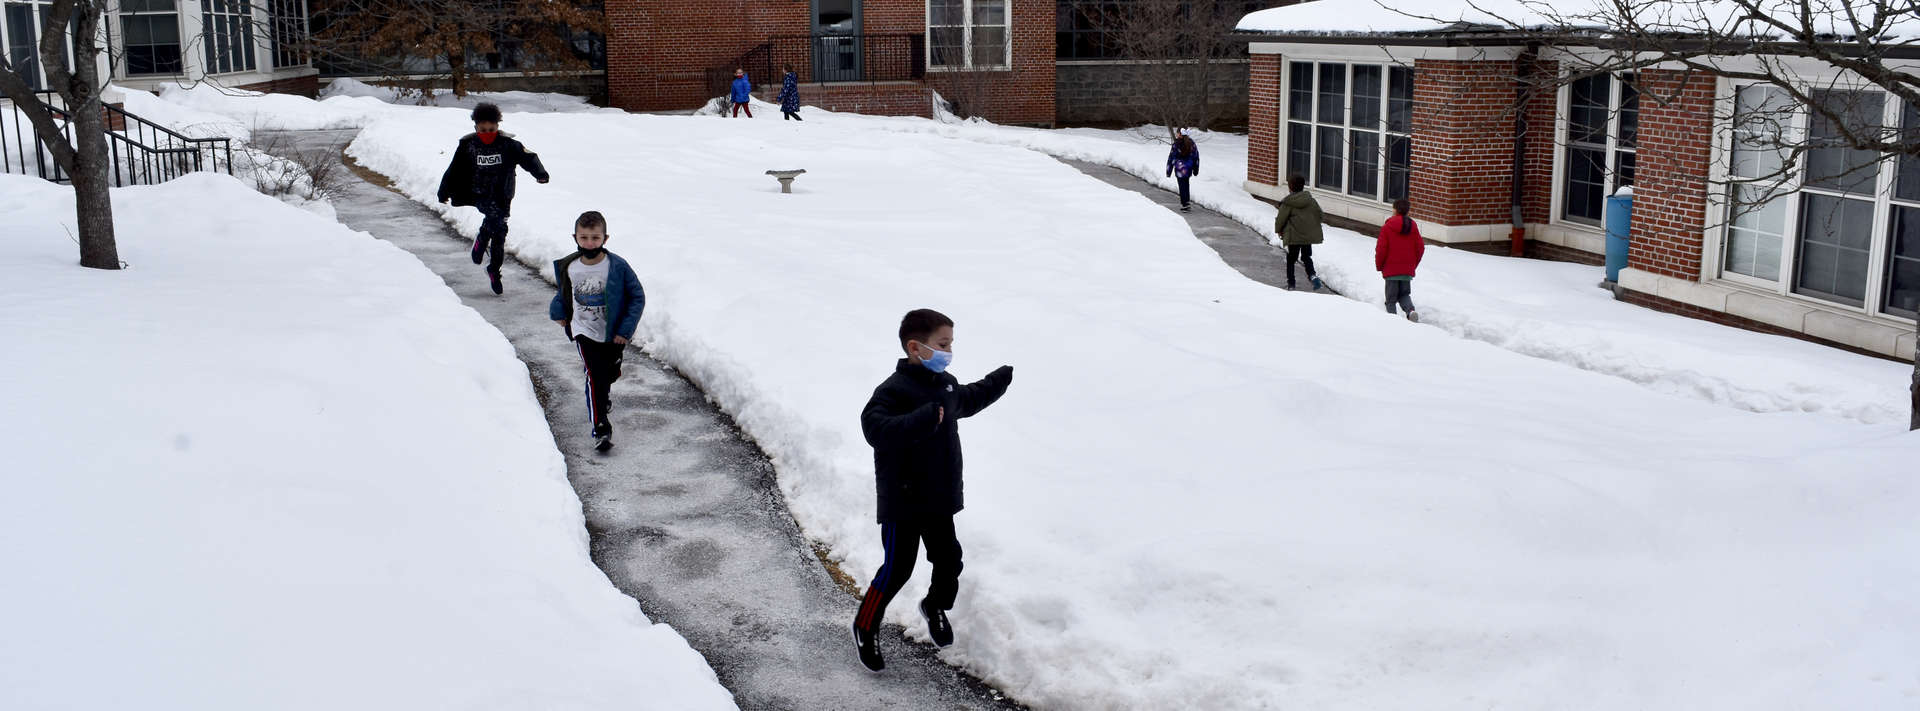 Students running on an outside path around the snow